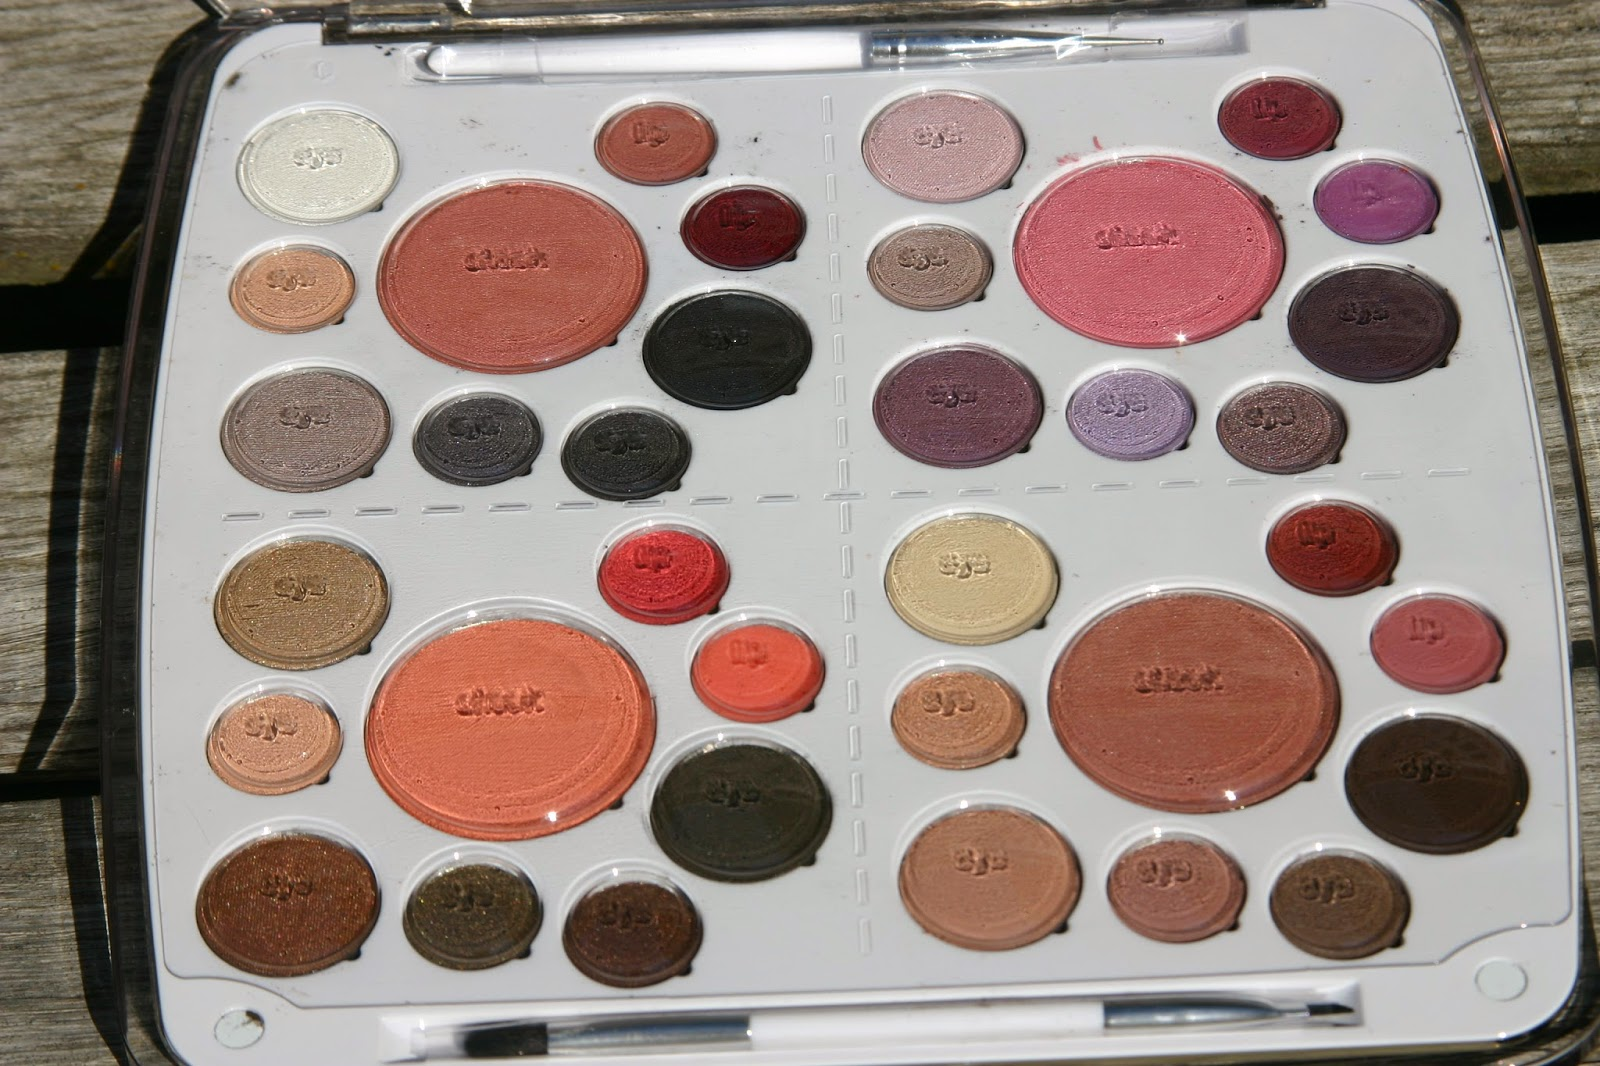 spoiled boxes em cosmetics career life palette career life palette